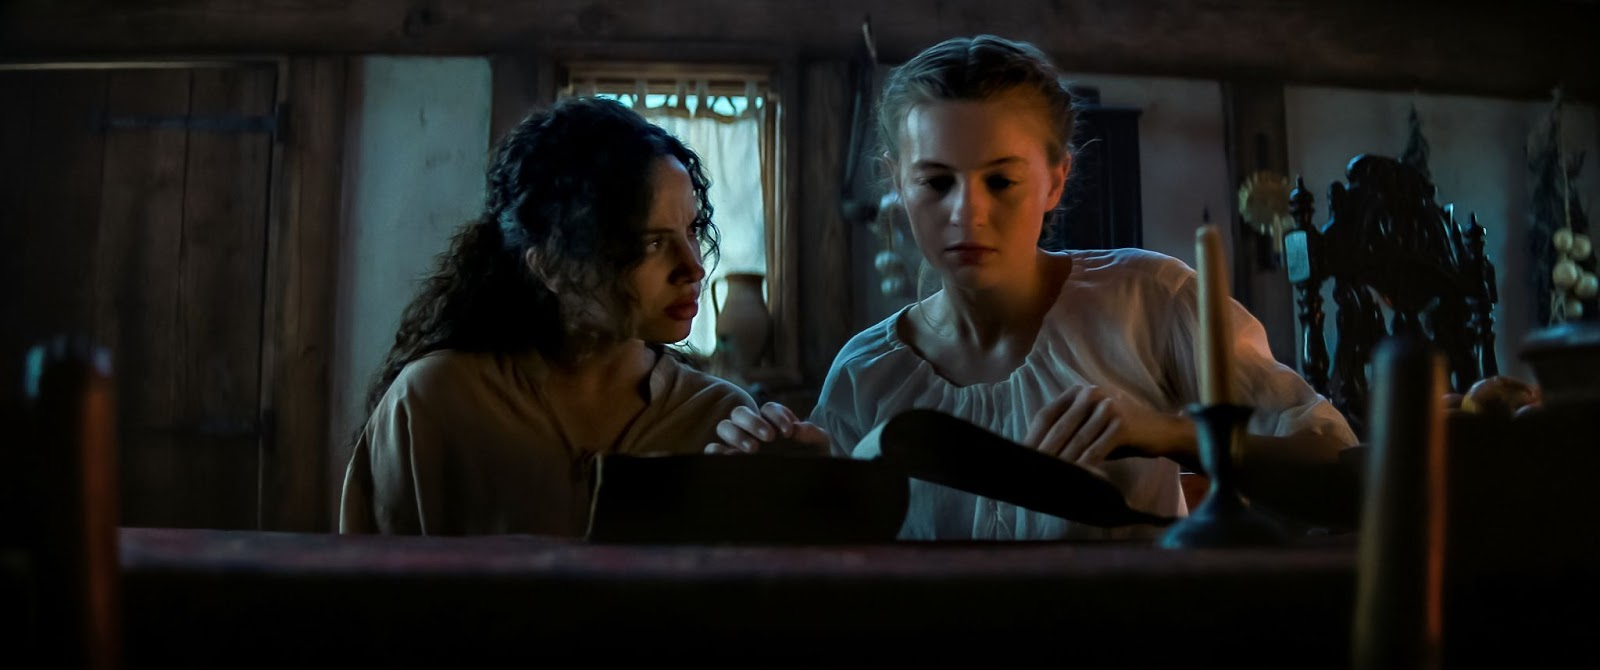 From left, Madeira as Sarah Fier and Welch as Hannah. The girls stand in a darkened room, Hannah opening a thick old book. She looks down at the pages as Sarah watches her, looking worried. Courtesy of Netflix.